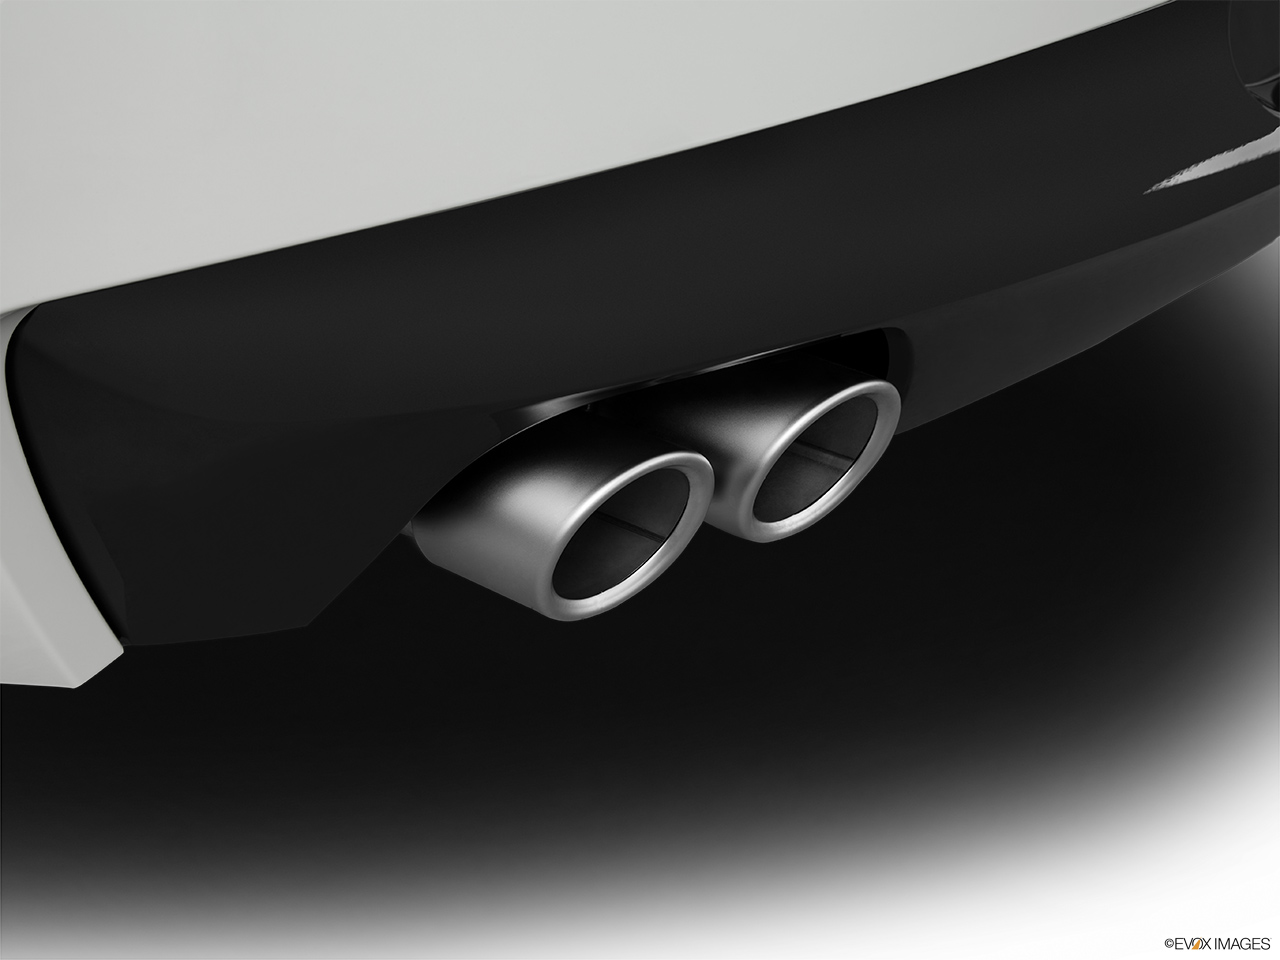 2015 Bmw Z4 Roadster 28i Chrome Tip Exhaust Pipe